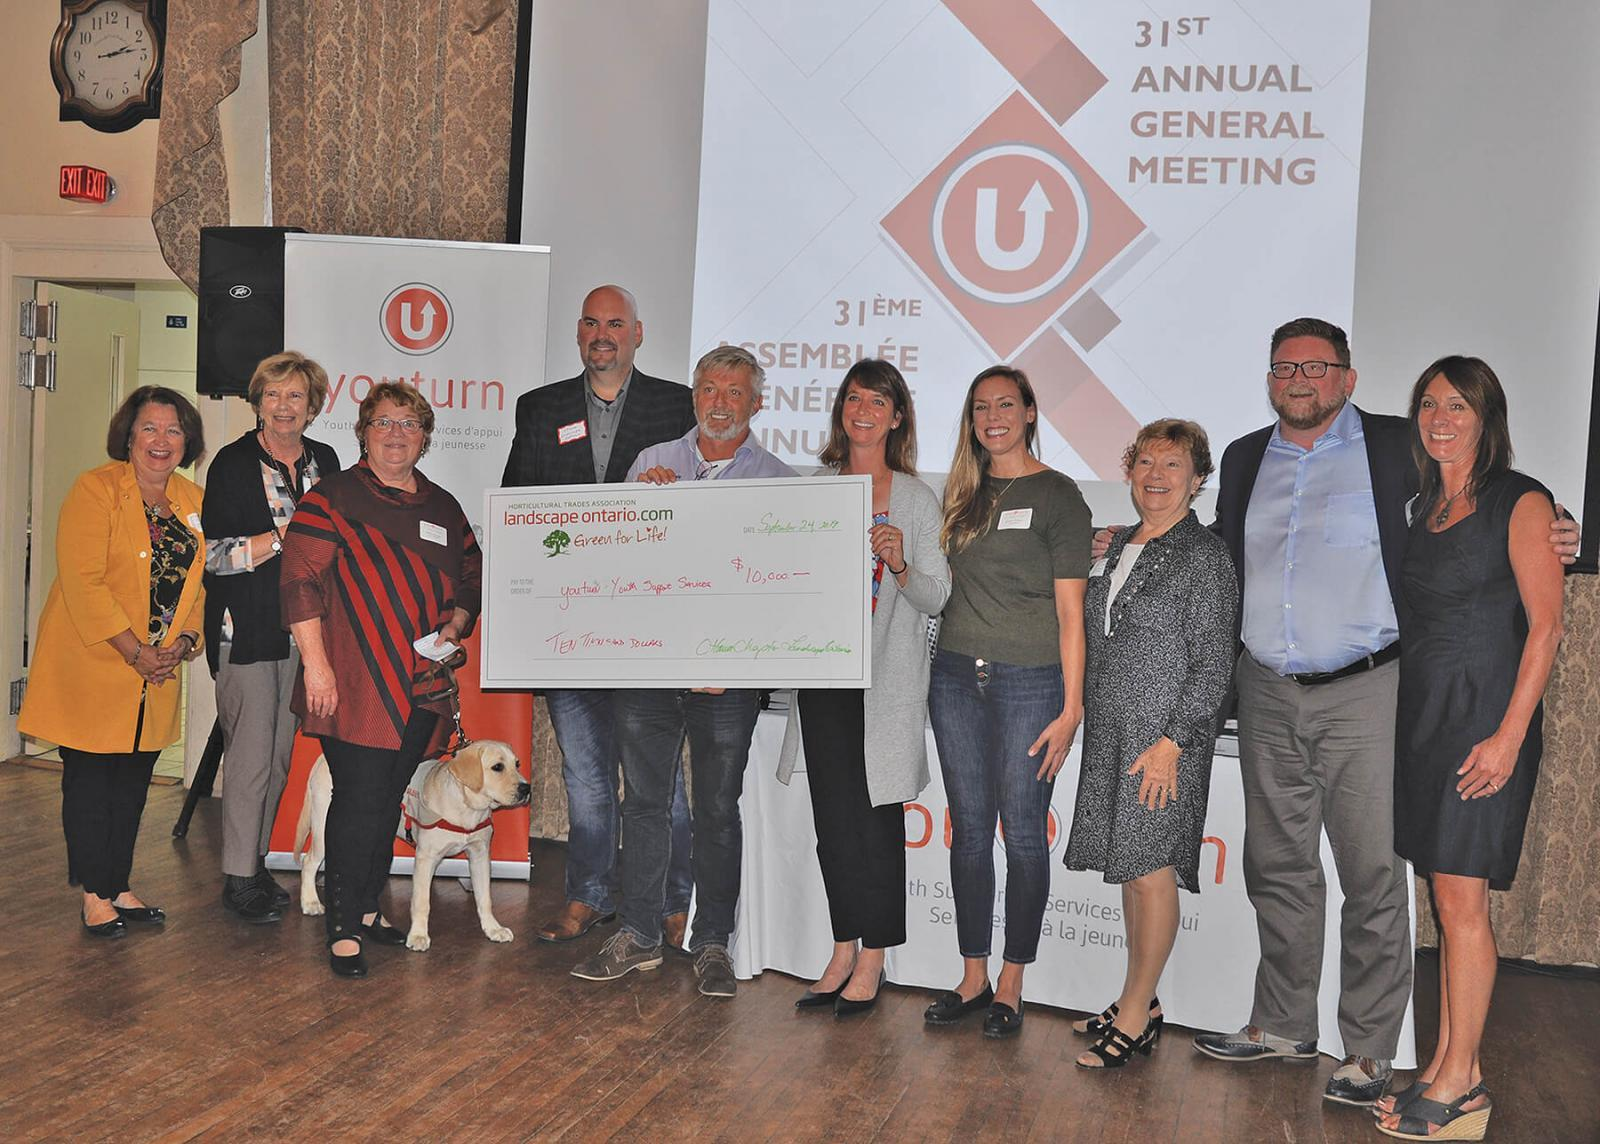 Ottawa Chapter raises $10,000 to support youth